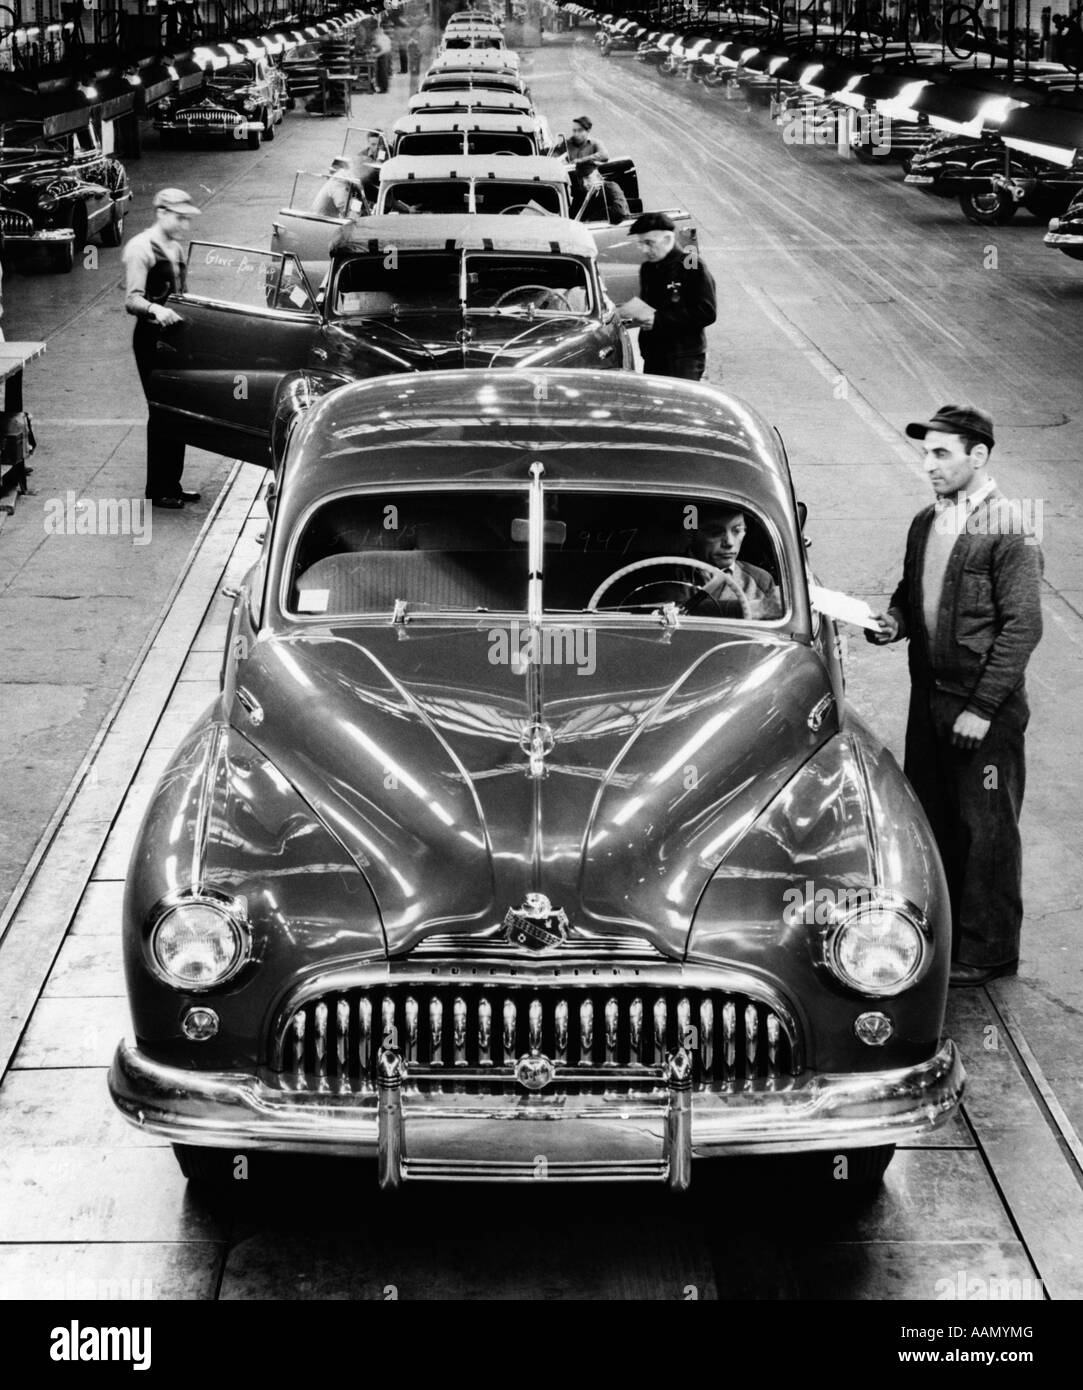 1950s BUICK AUTOMOBILE ASSEMBLY LINE DETROIT MICHIGAN HEAD-ON VIEW - Stock Image